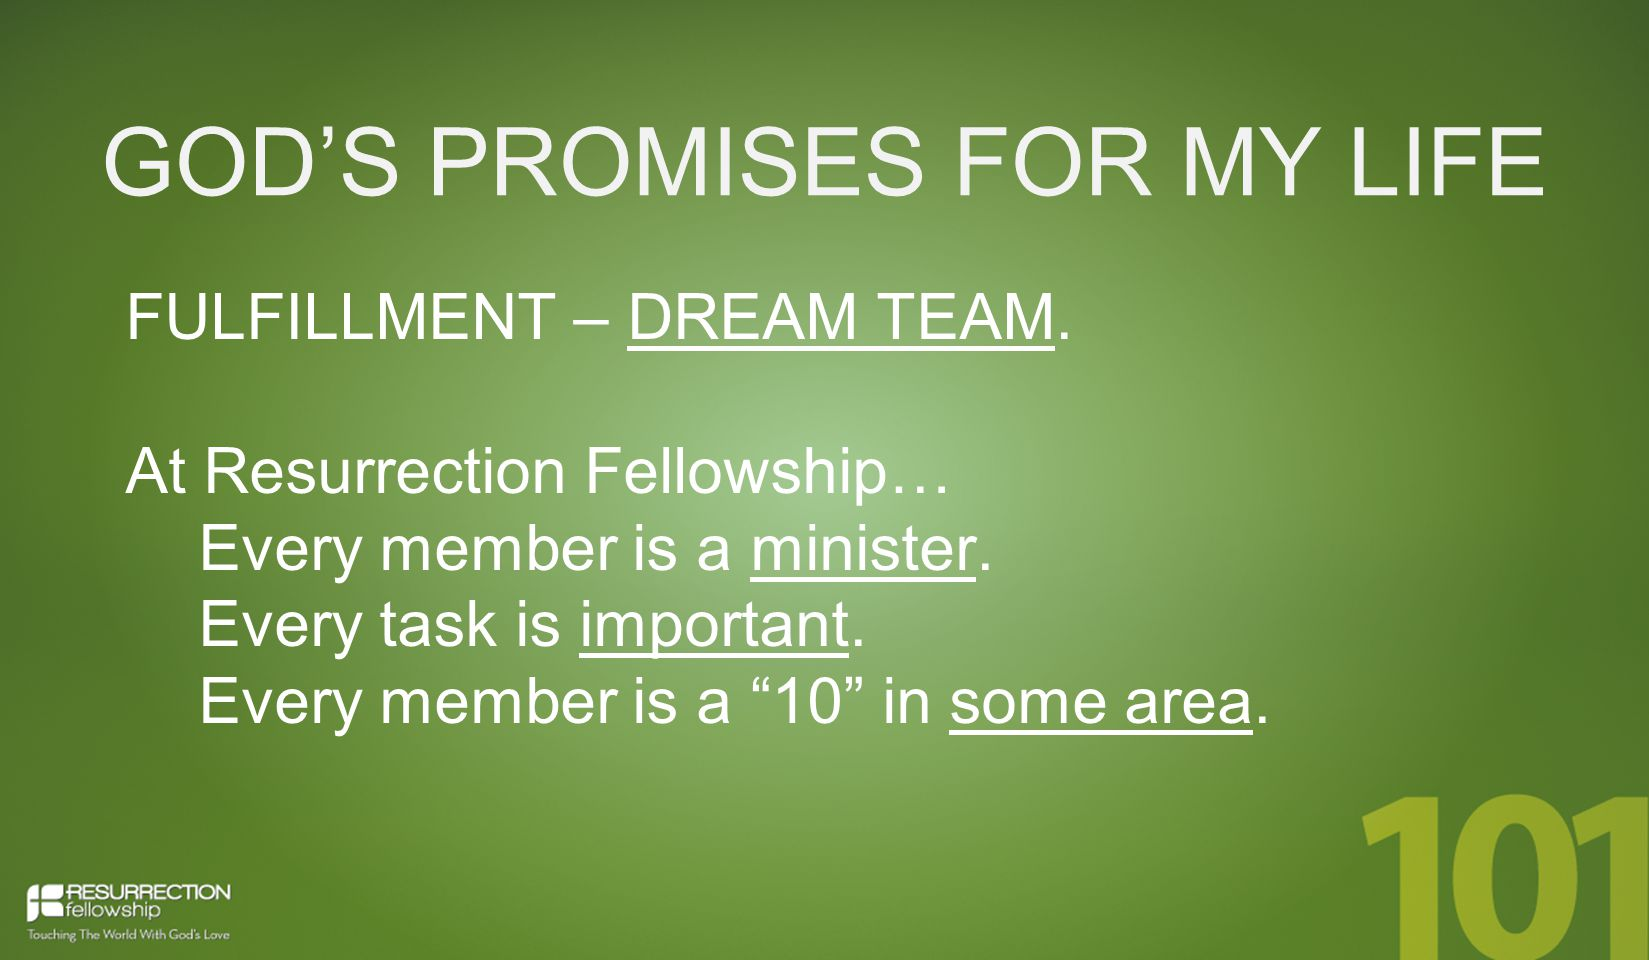 GOD'S PROMISES FOR MY LIFE FULFILLMENT – DREAM TEAM.